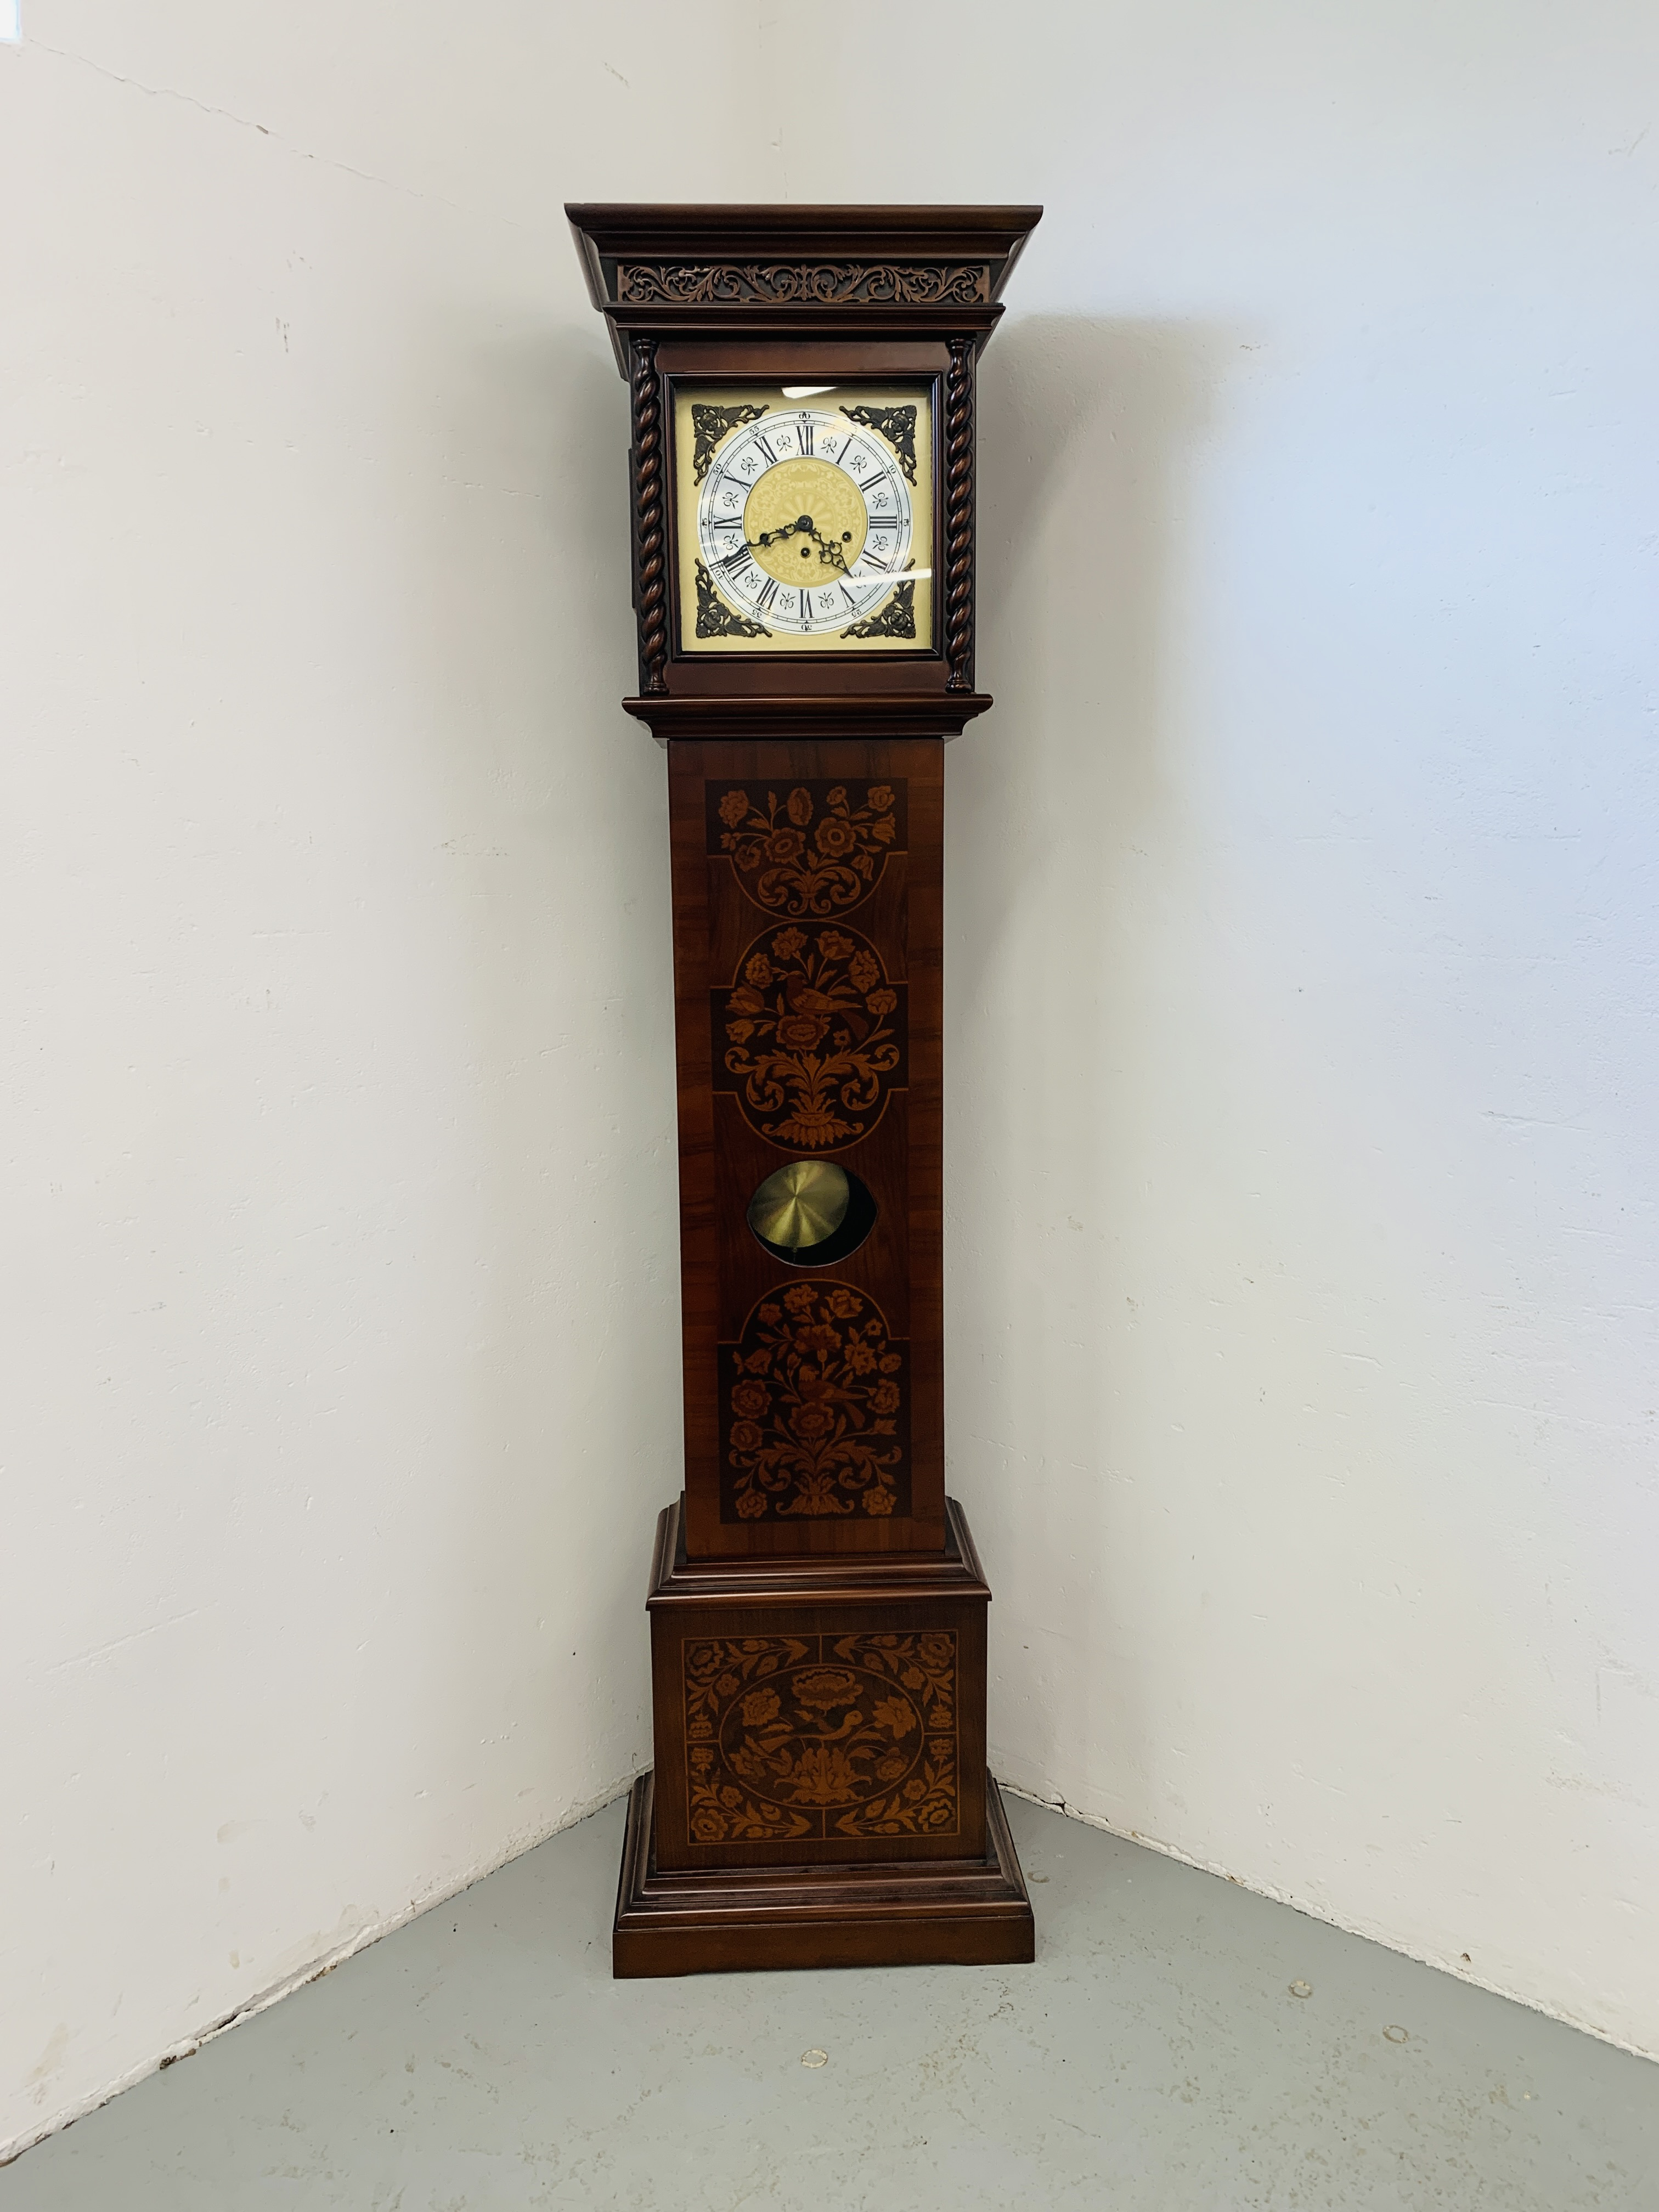 A GOOD QUALITY REPRODUCTION LONG CASE CLOCK - WESTMINSTER CHIME - SOLD AS SEEN